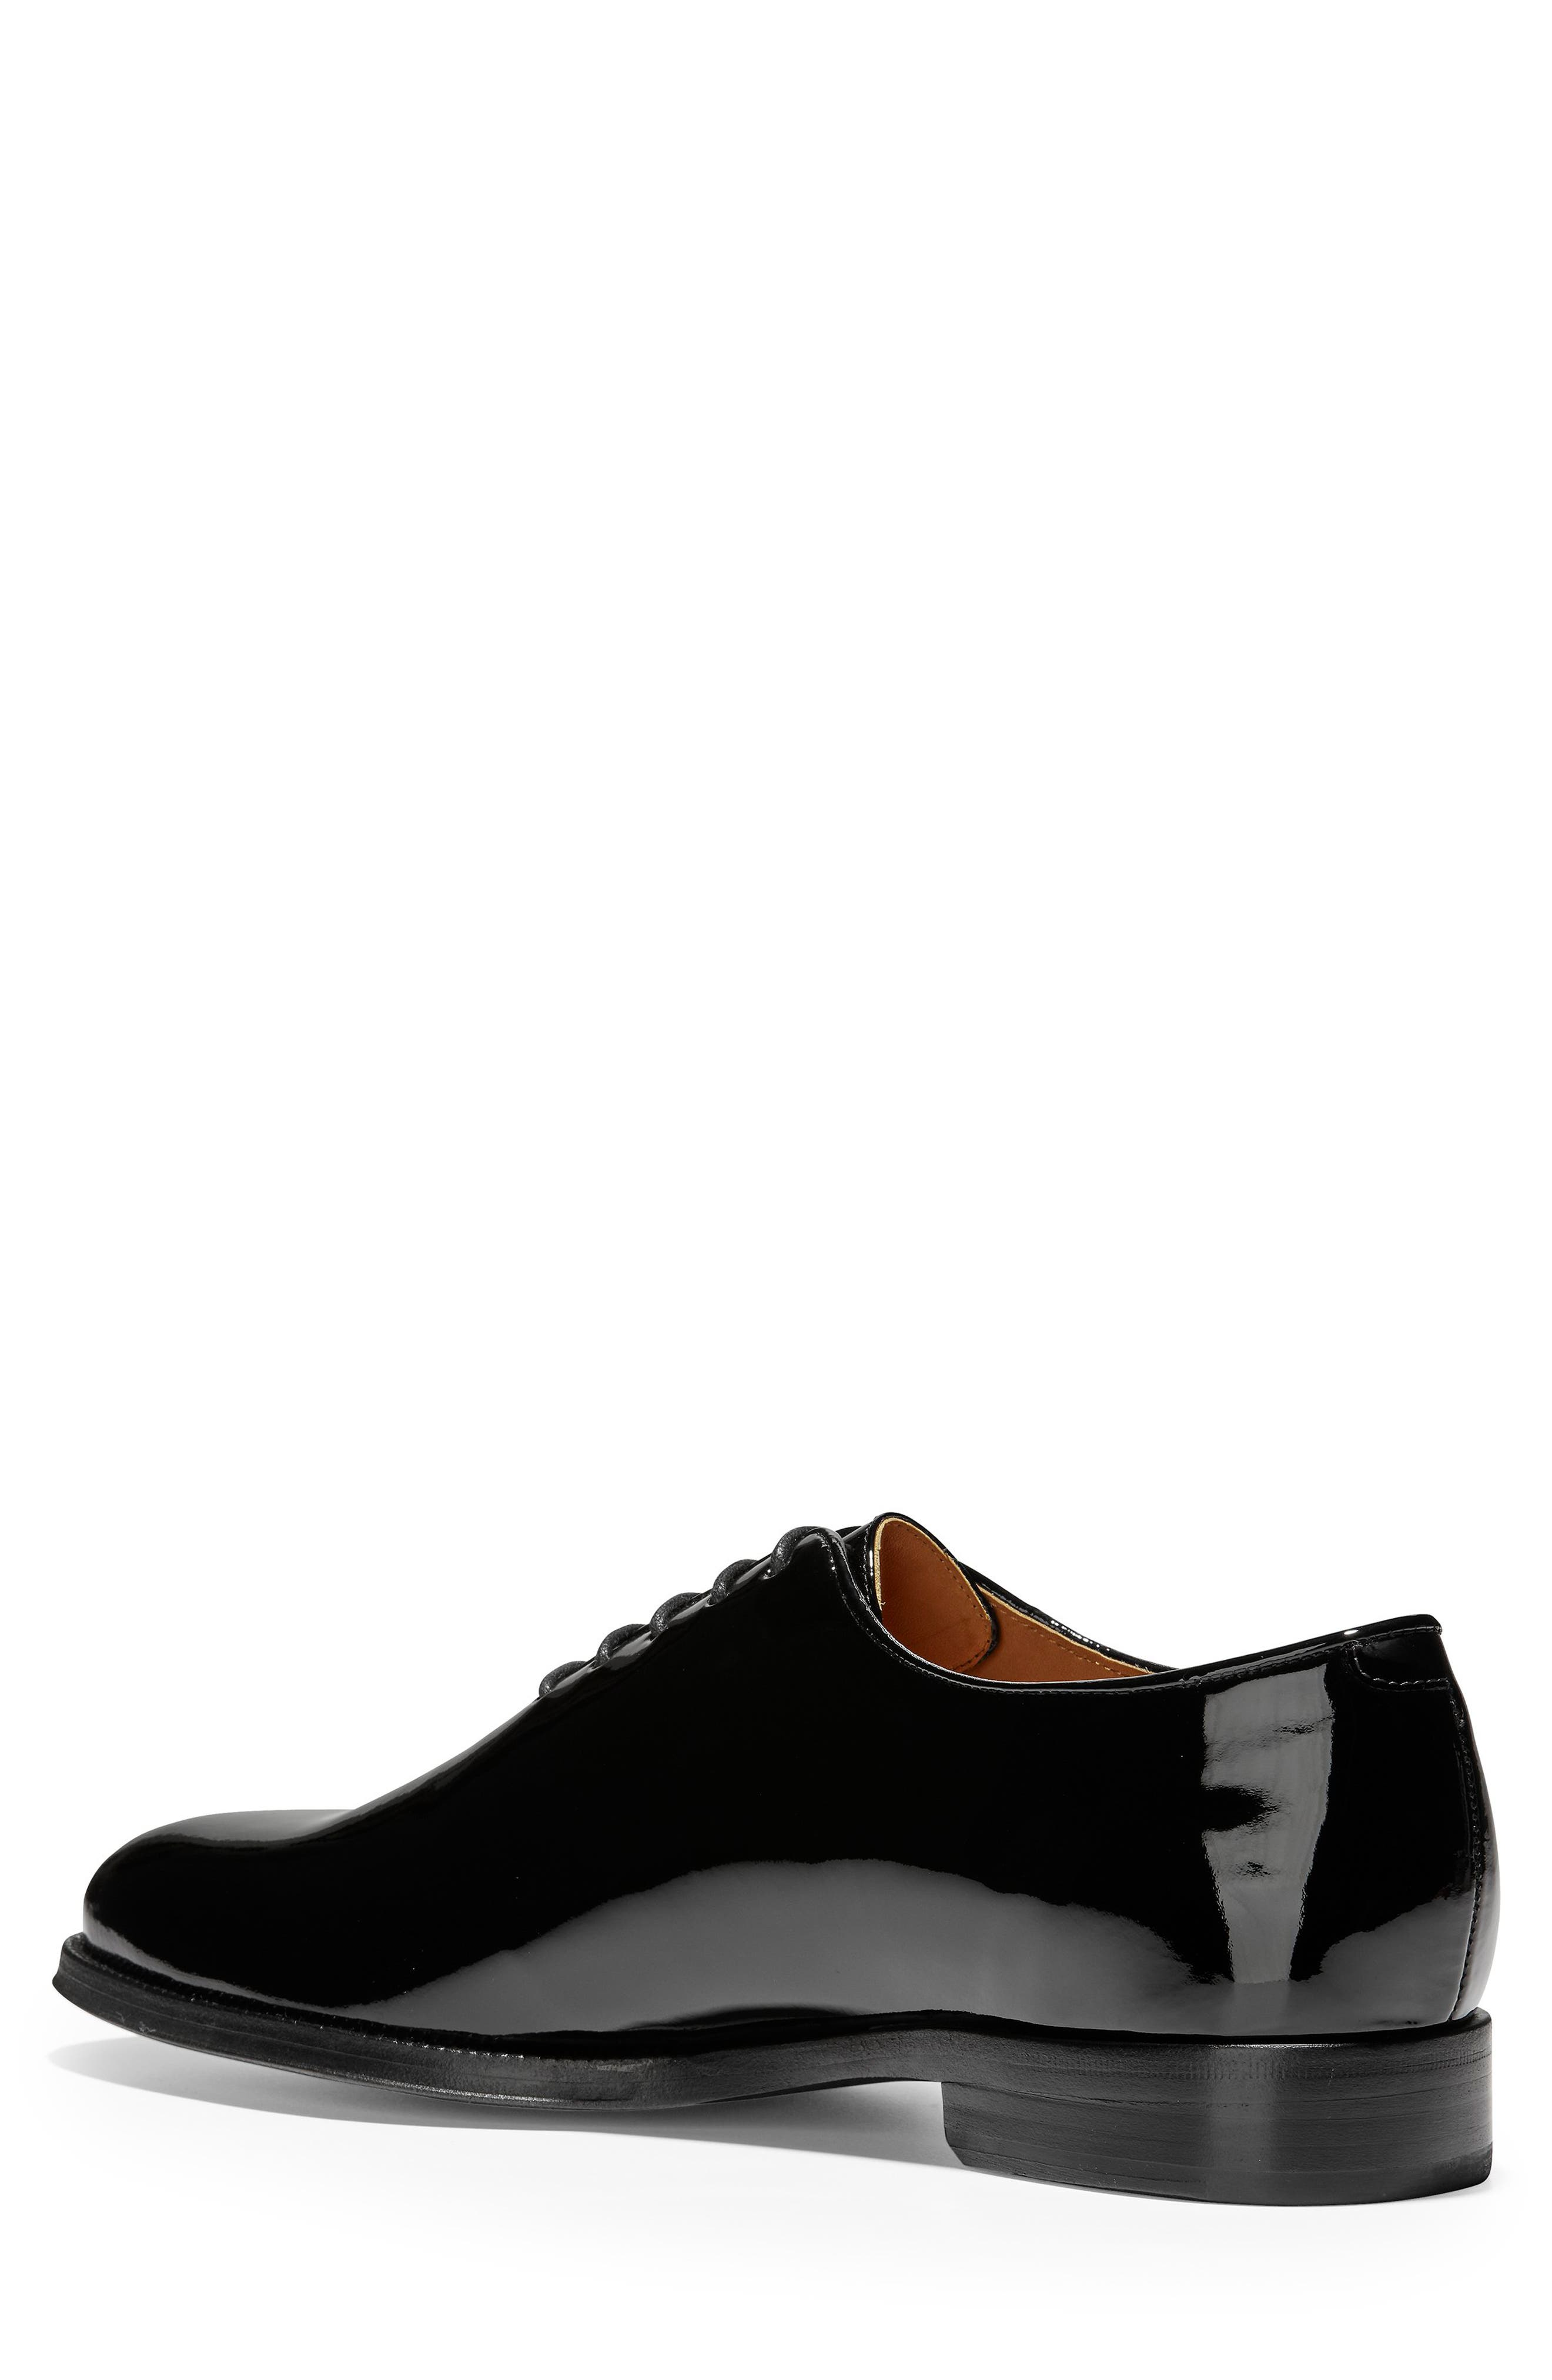 American Classics Grammercy Whole Cut Shoe,                             Alternate thumbnail 2, color,                             BLACK PATENT LEATHER